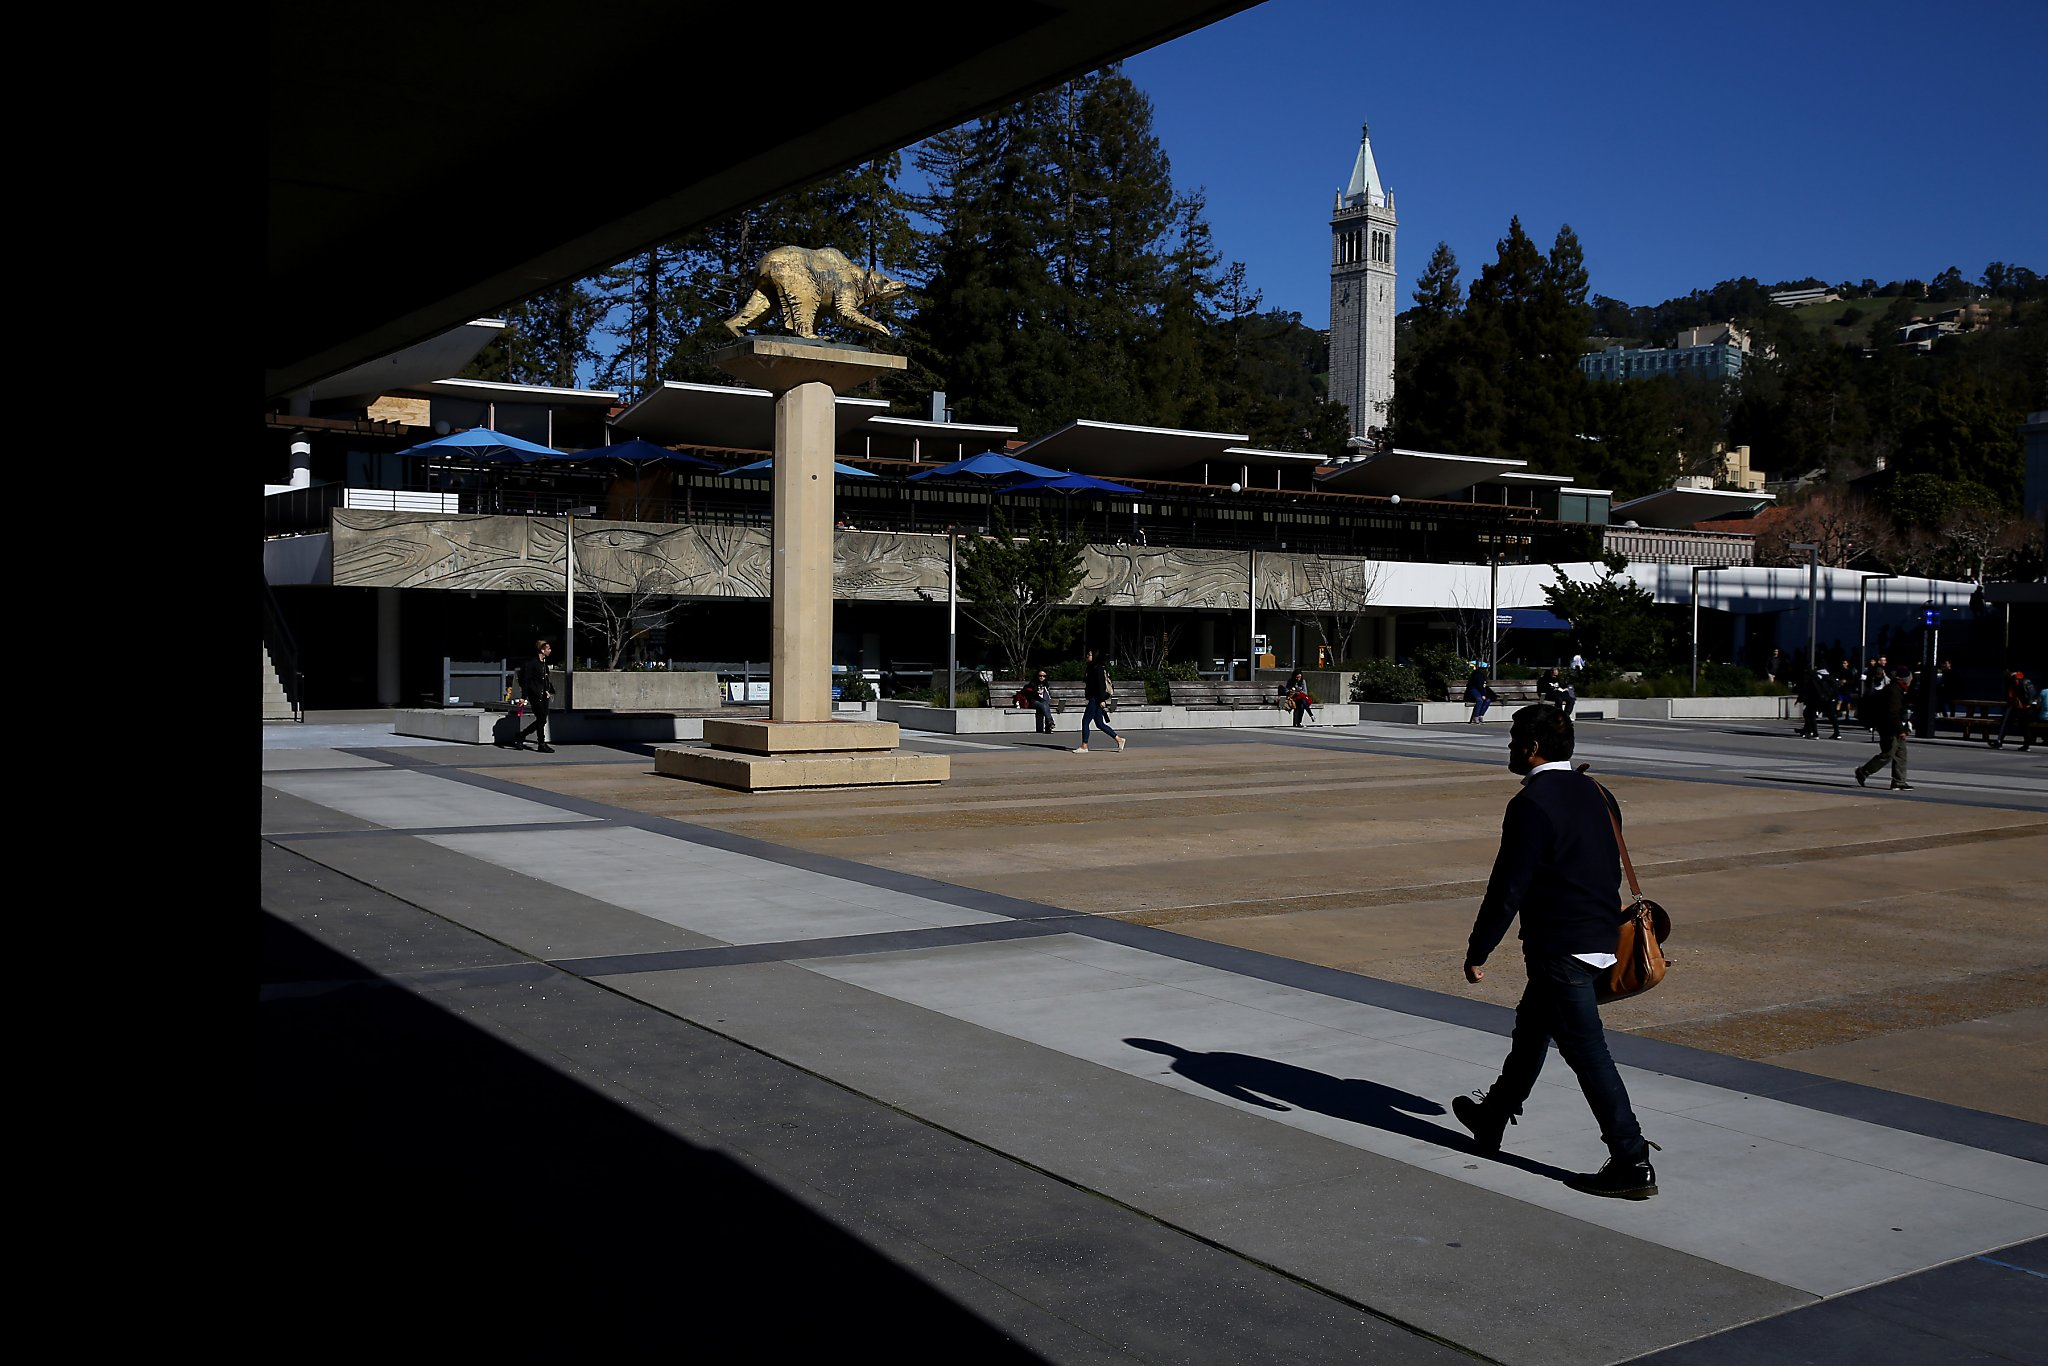 UC sees 1st drop in international applicants in more than decade